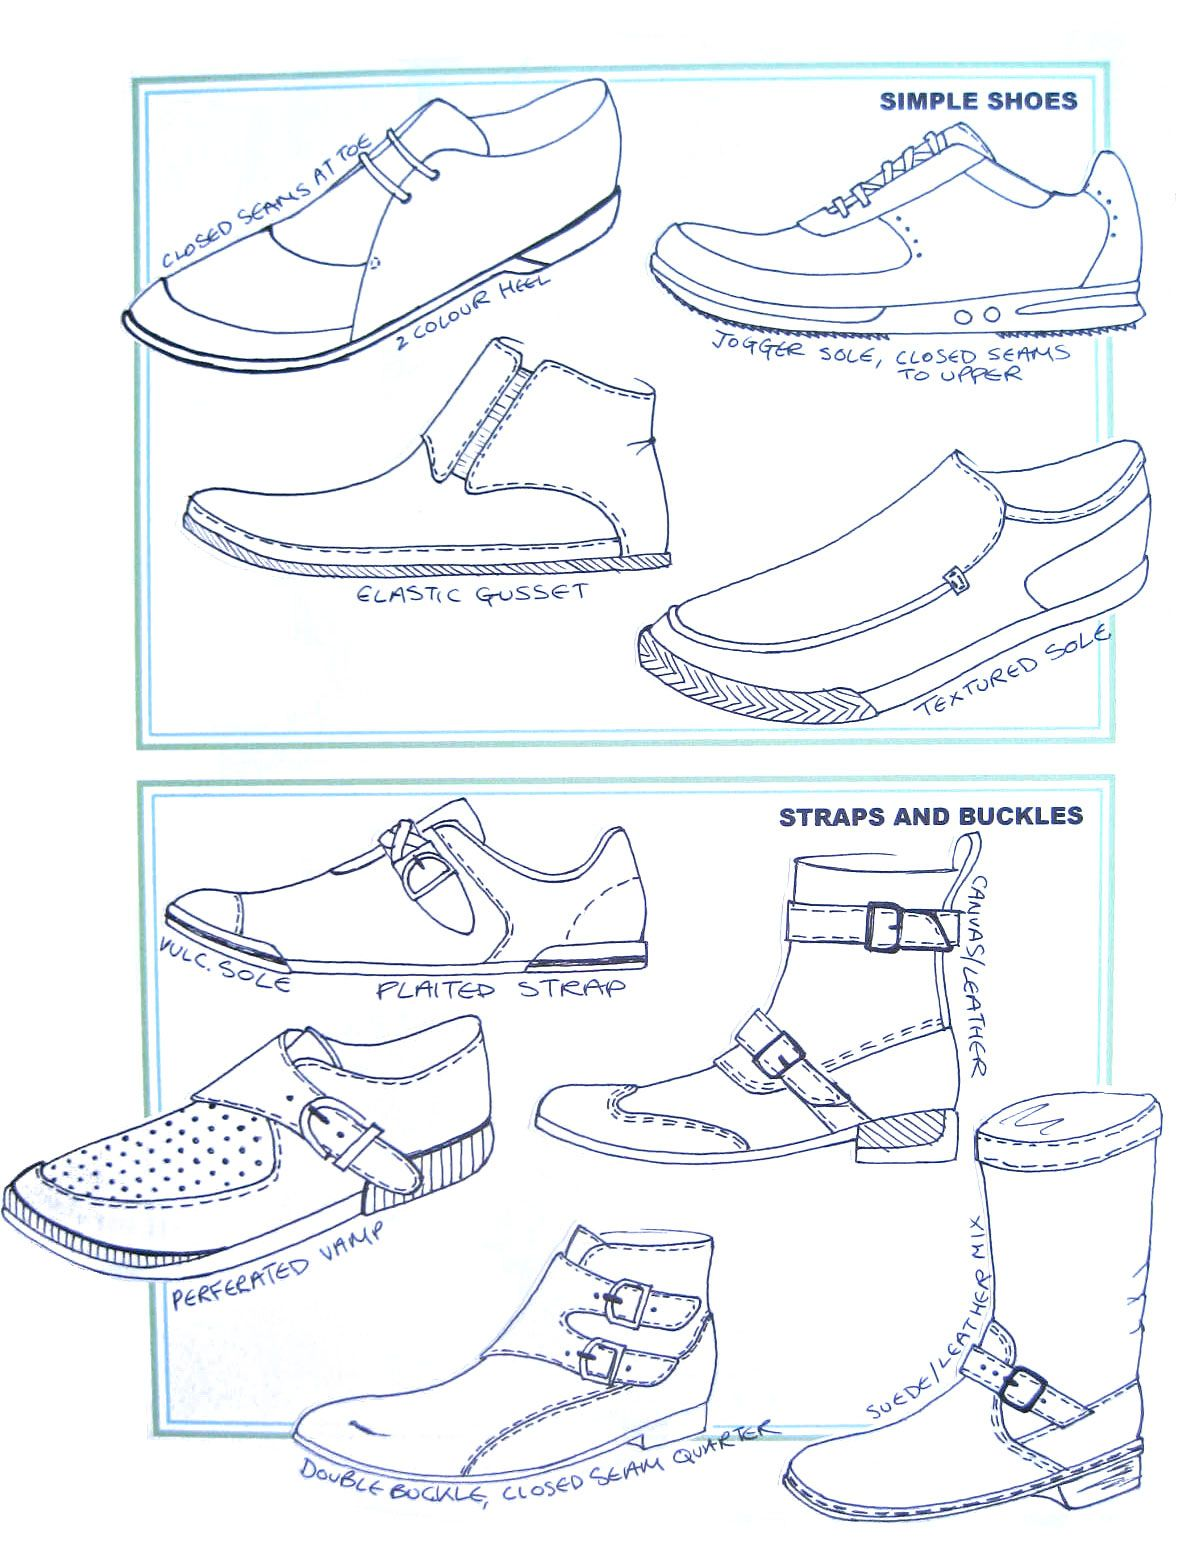 1192x1552 Chart Of Simple Shoes, And Shoes With Straps And Buckles